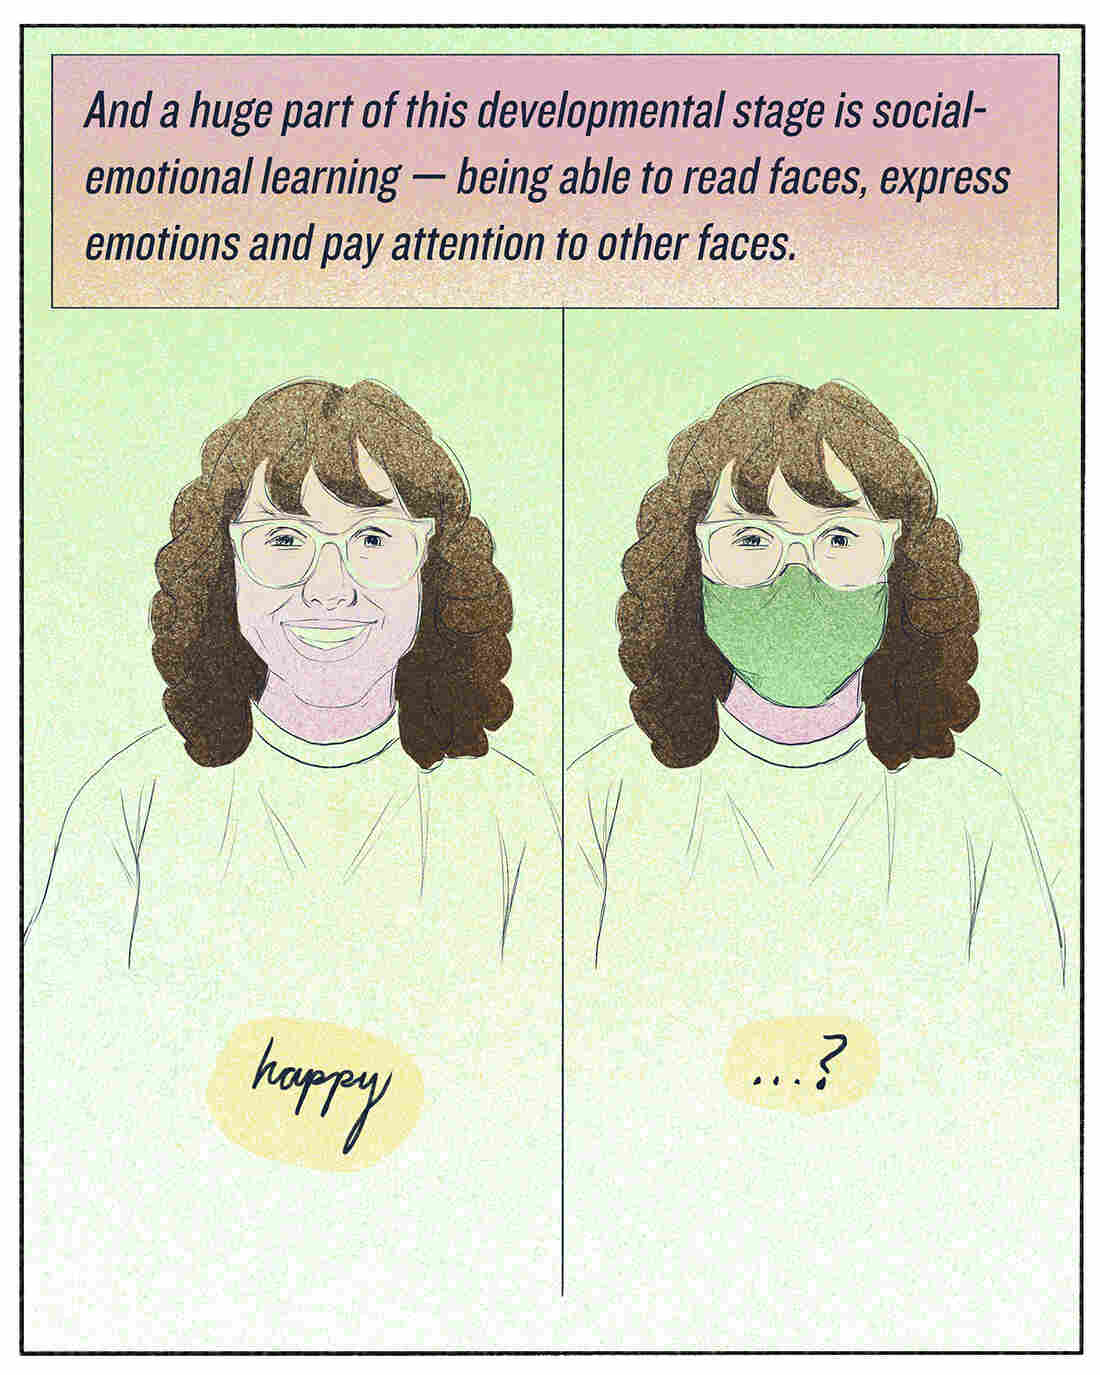 """""""And a huge part of this developmental stage is social-emotional learning — being able to read faces, express emotions and pay attention to other faces."""""""